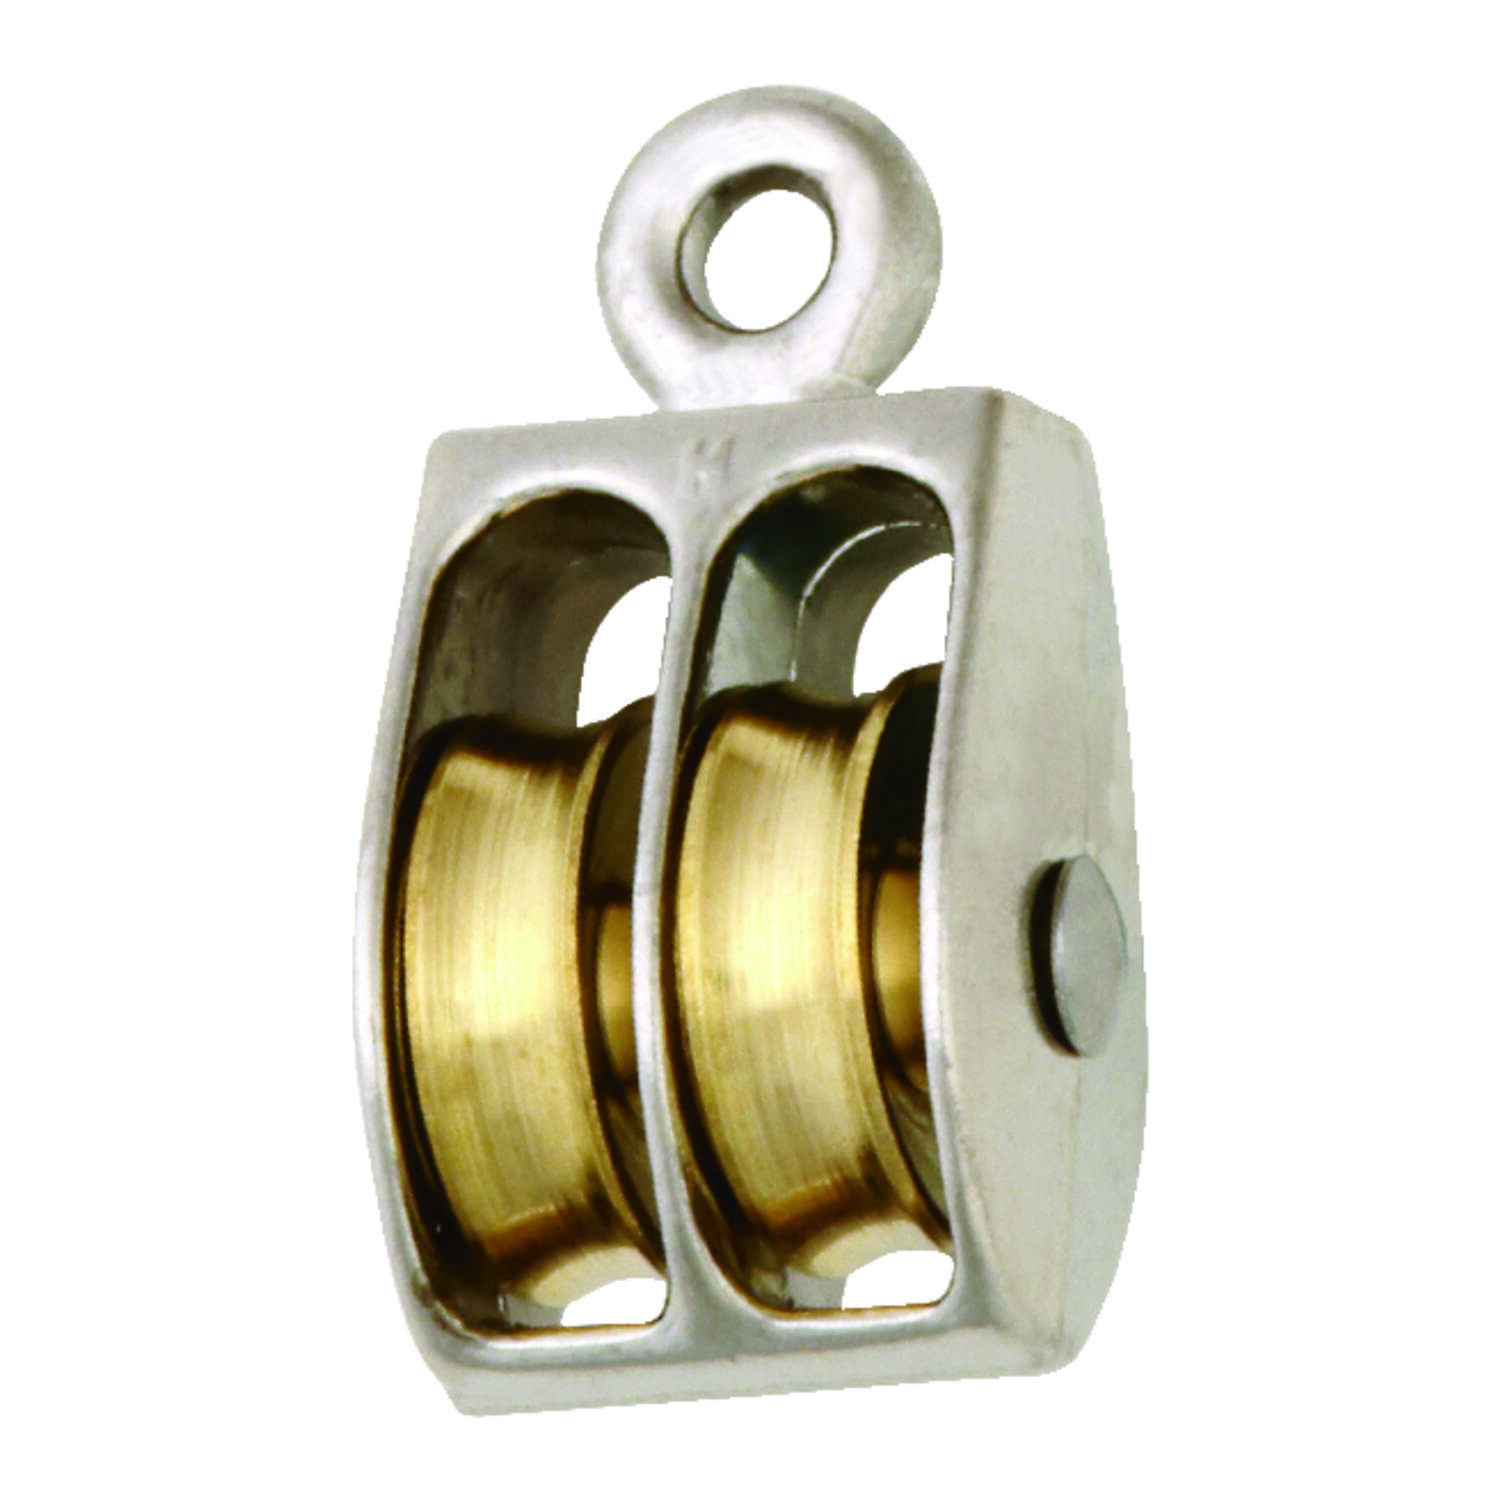 Campbell Chain  1 in. Dia. Nickel  Copper  Ridge Eye  Double Sheave Rigid Eye Pulley